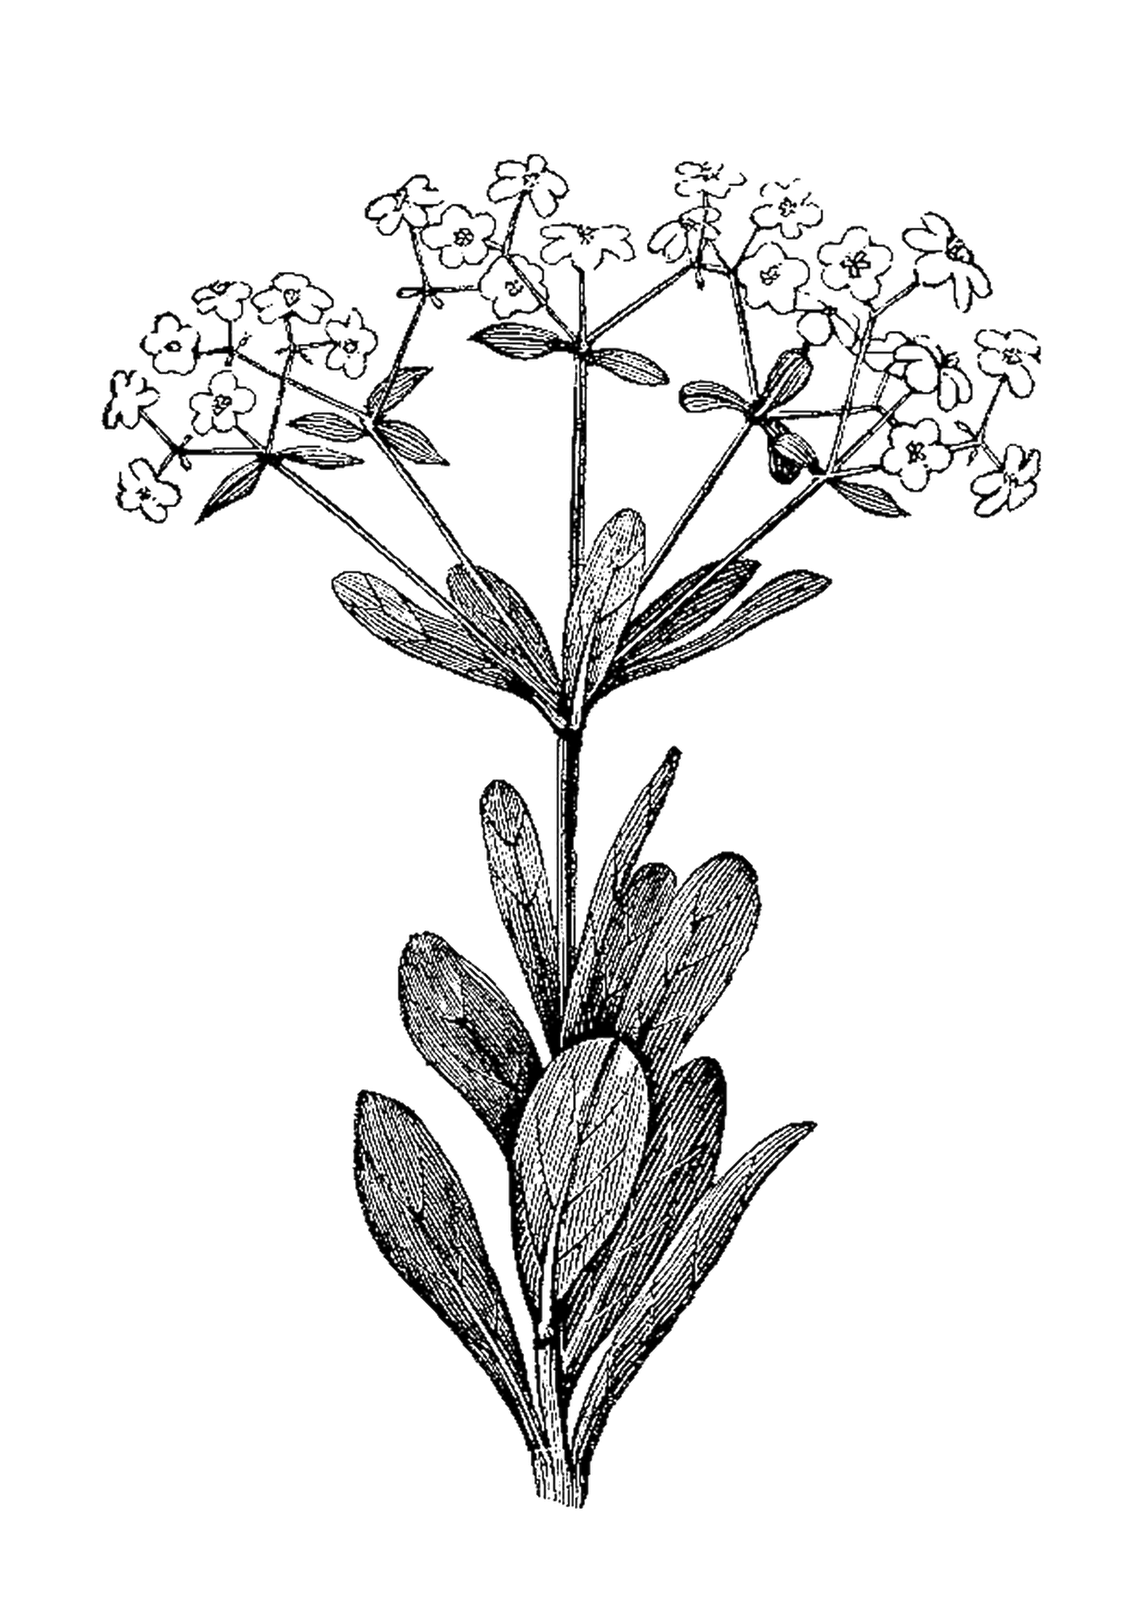 Botanical illustration black and white - photo#17